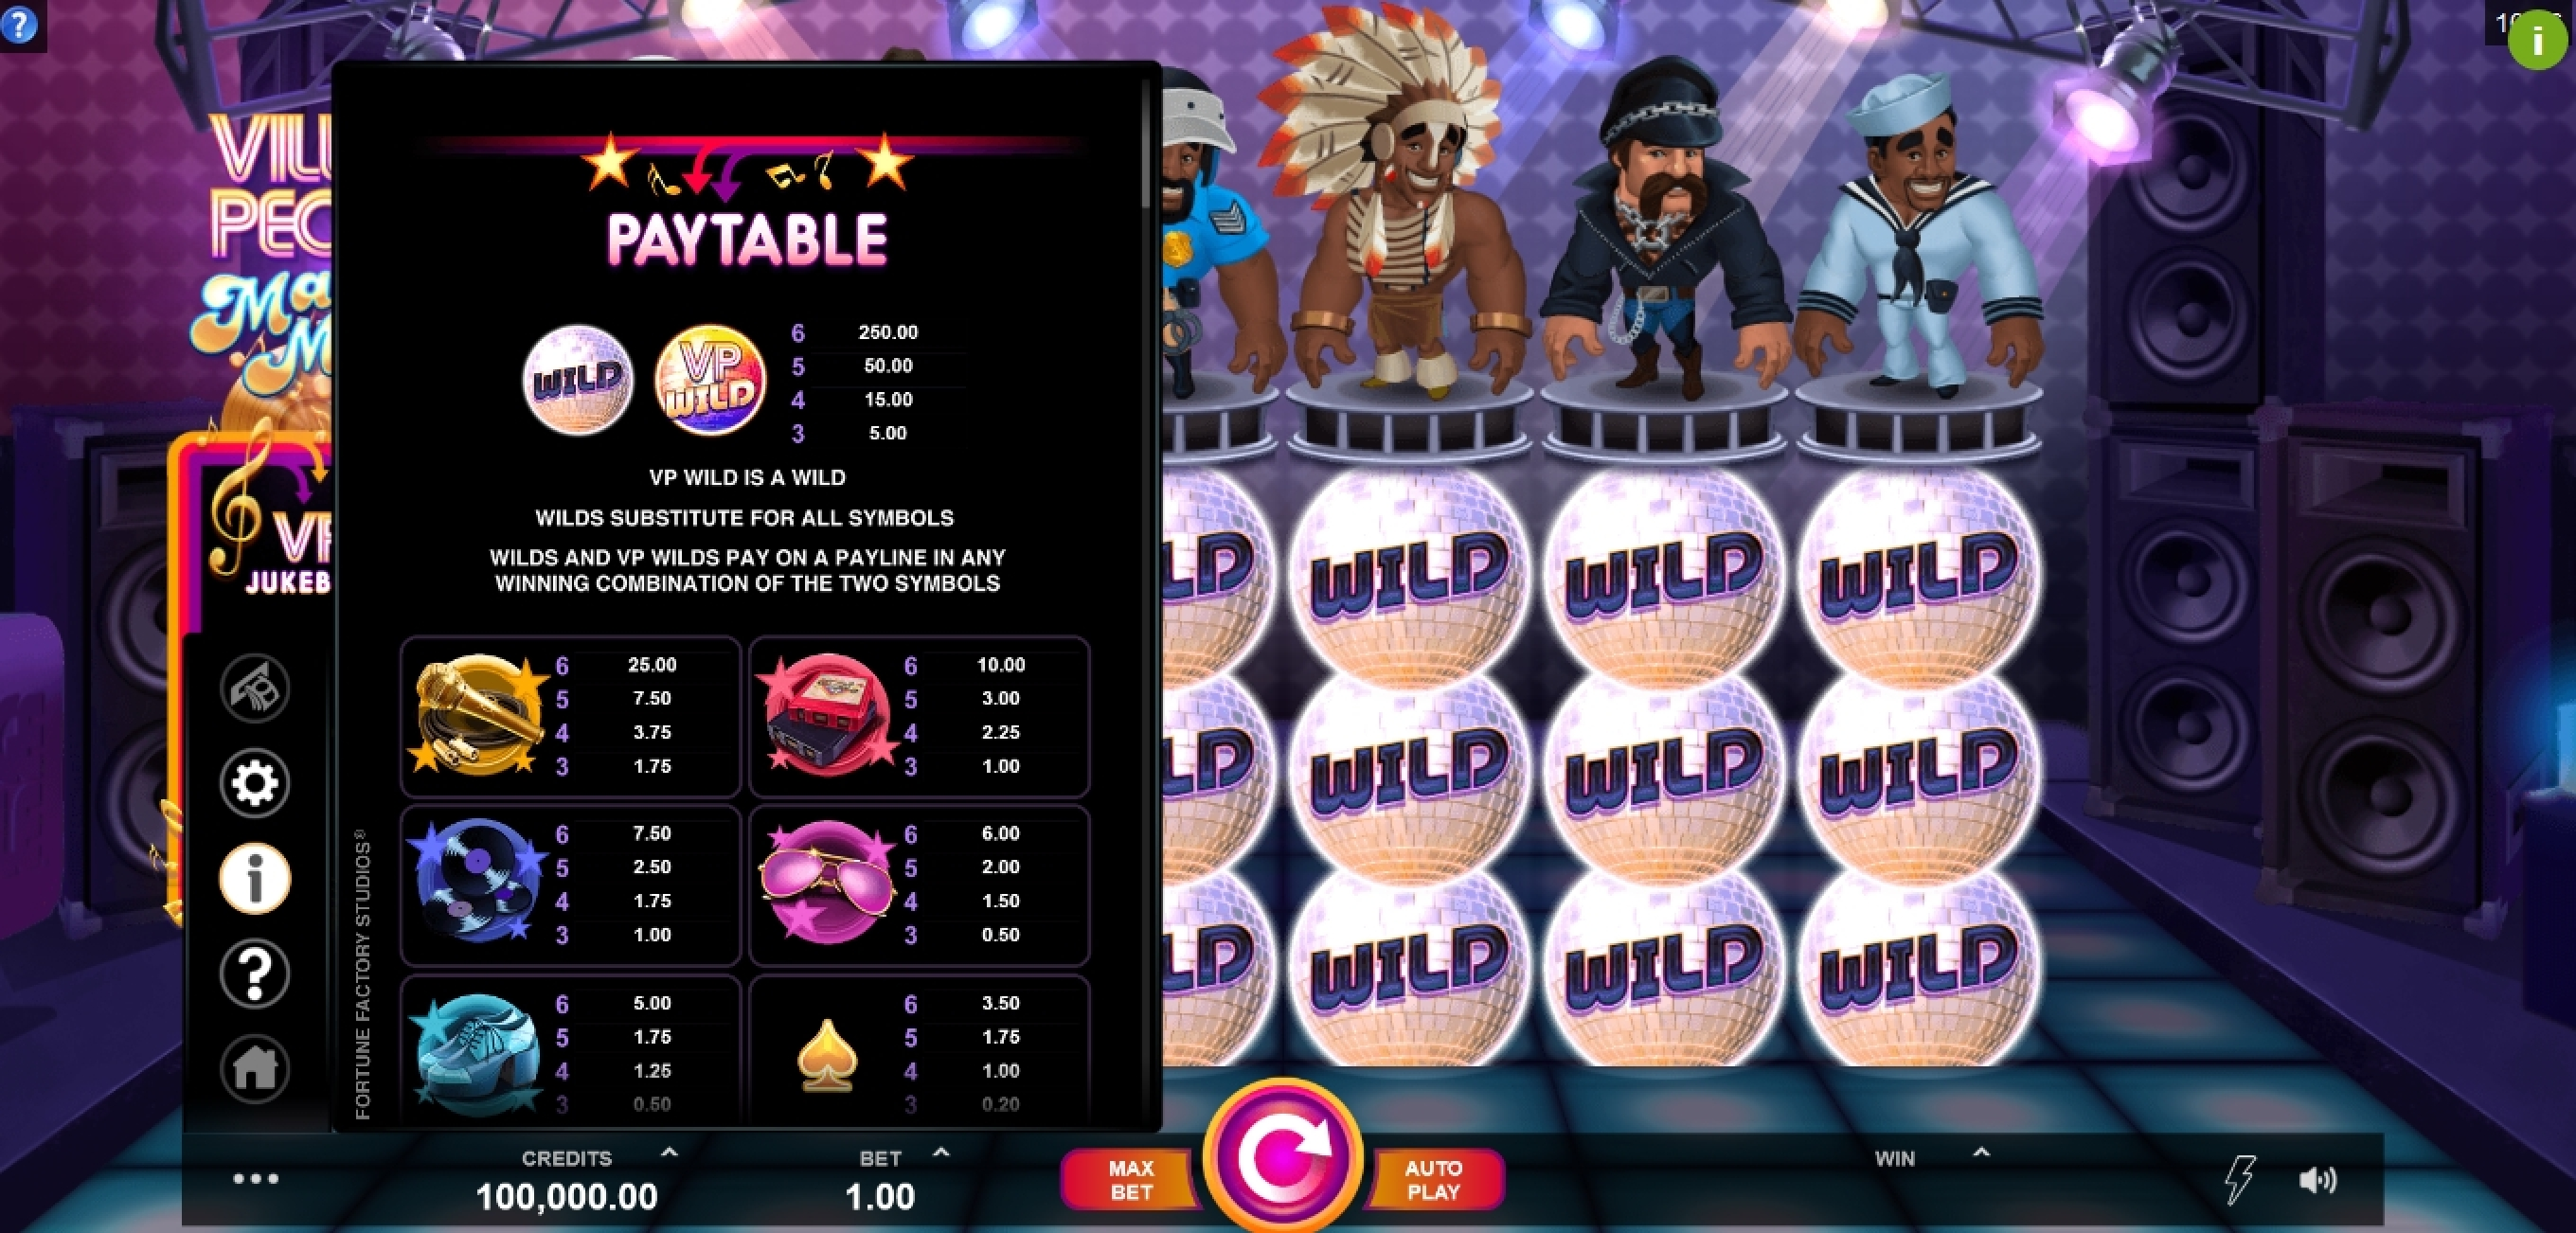 Info of Village People Macho Moves Slot Game by Fortune Factory Studios